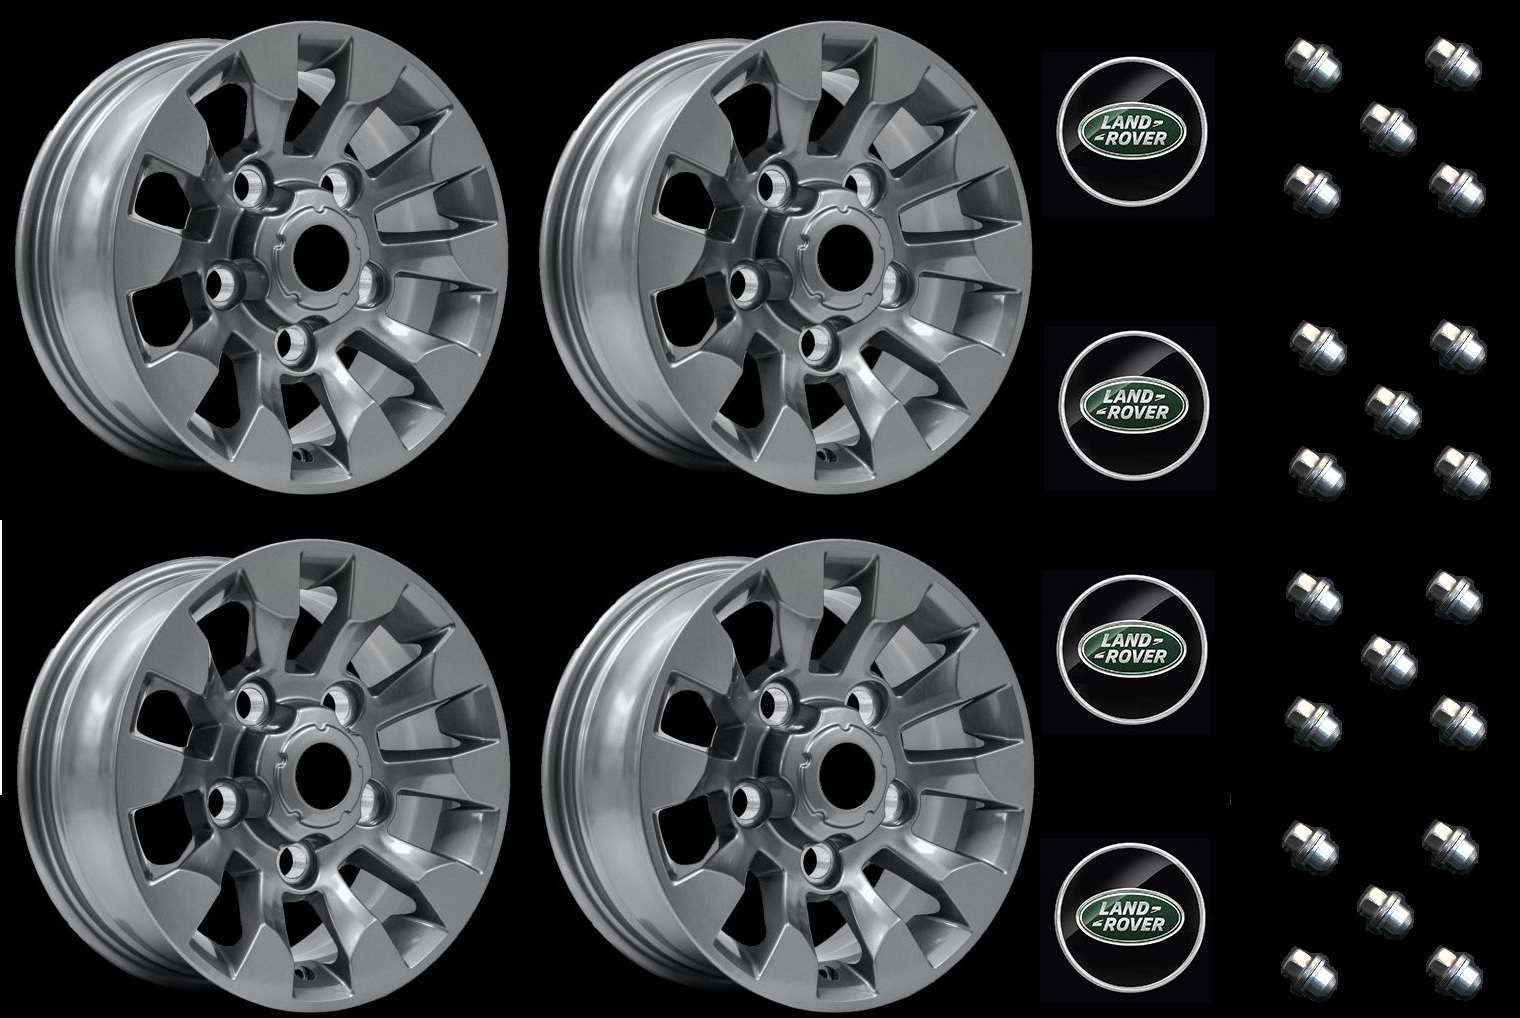 Alloy Wheels and Alloy Wheel Vehicle Kits